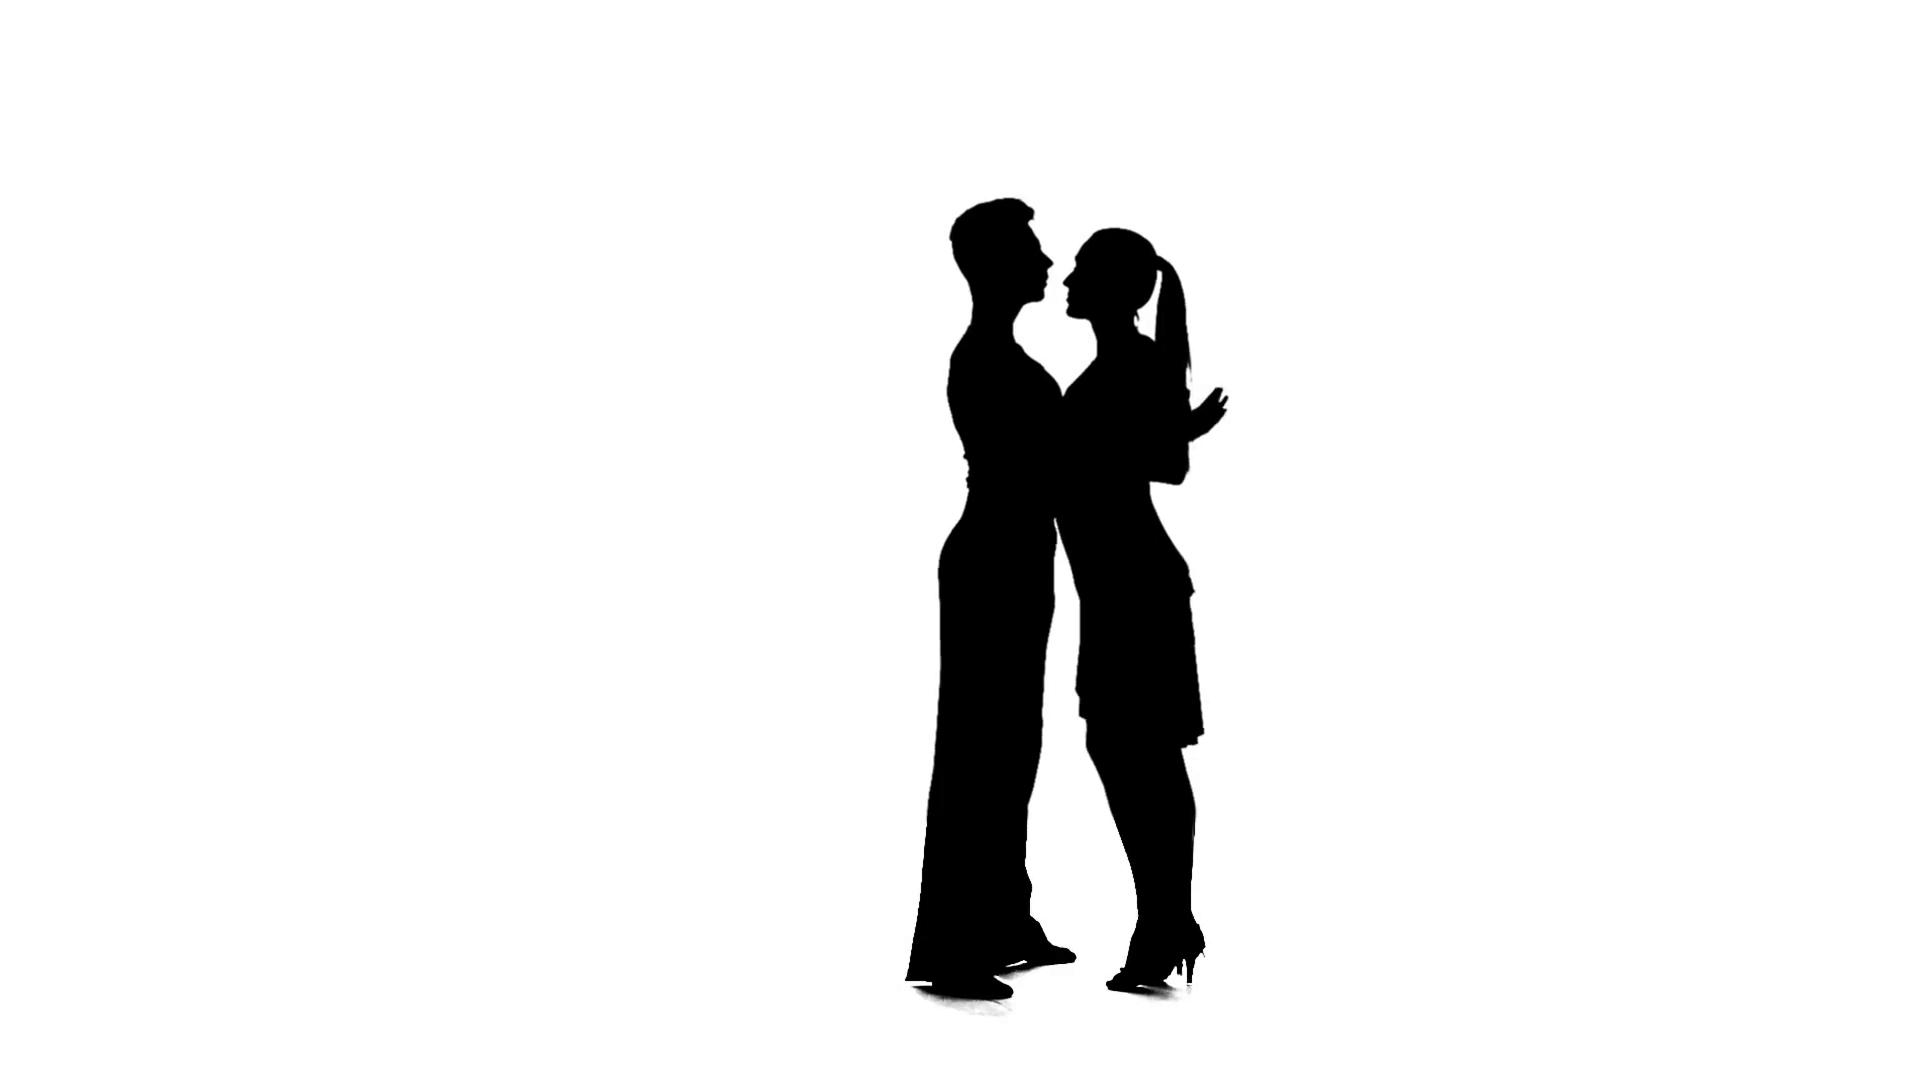 1920x1080 Couple Silhouette Professional Dancing Salsa On White Background